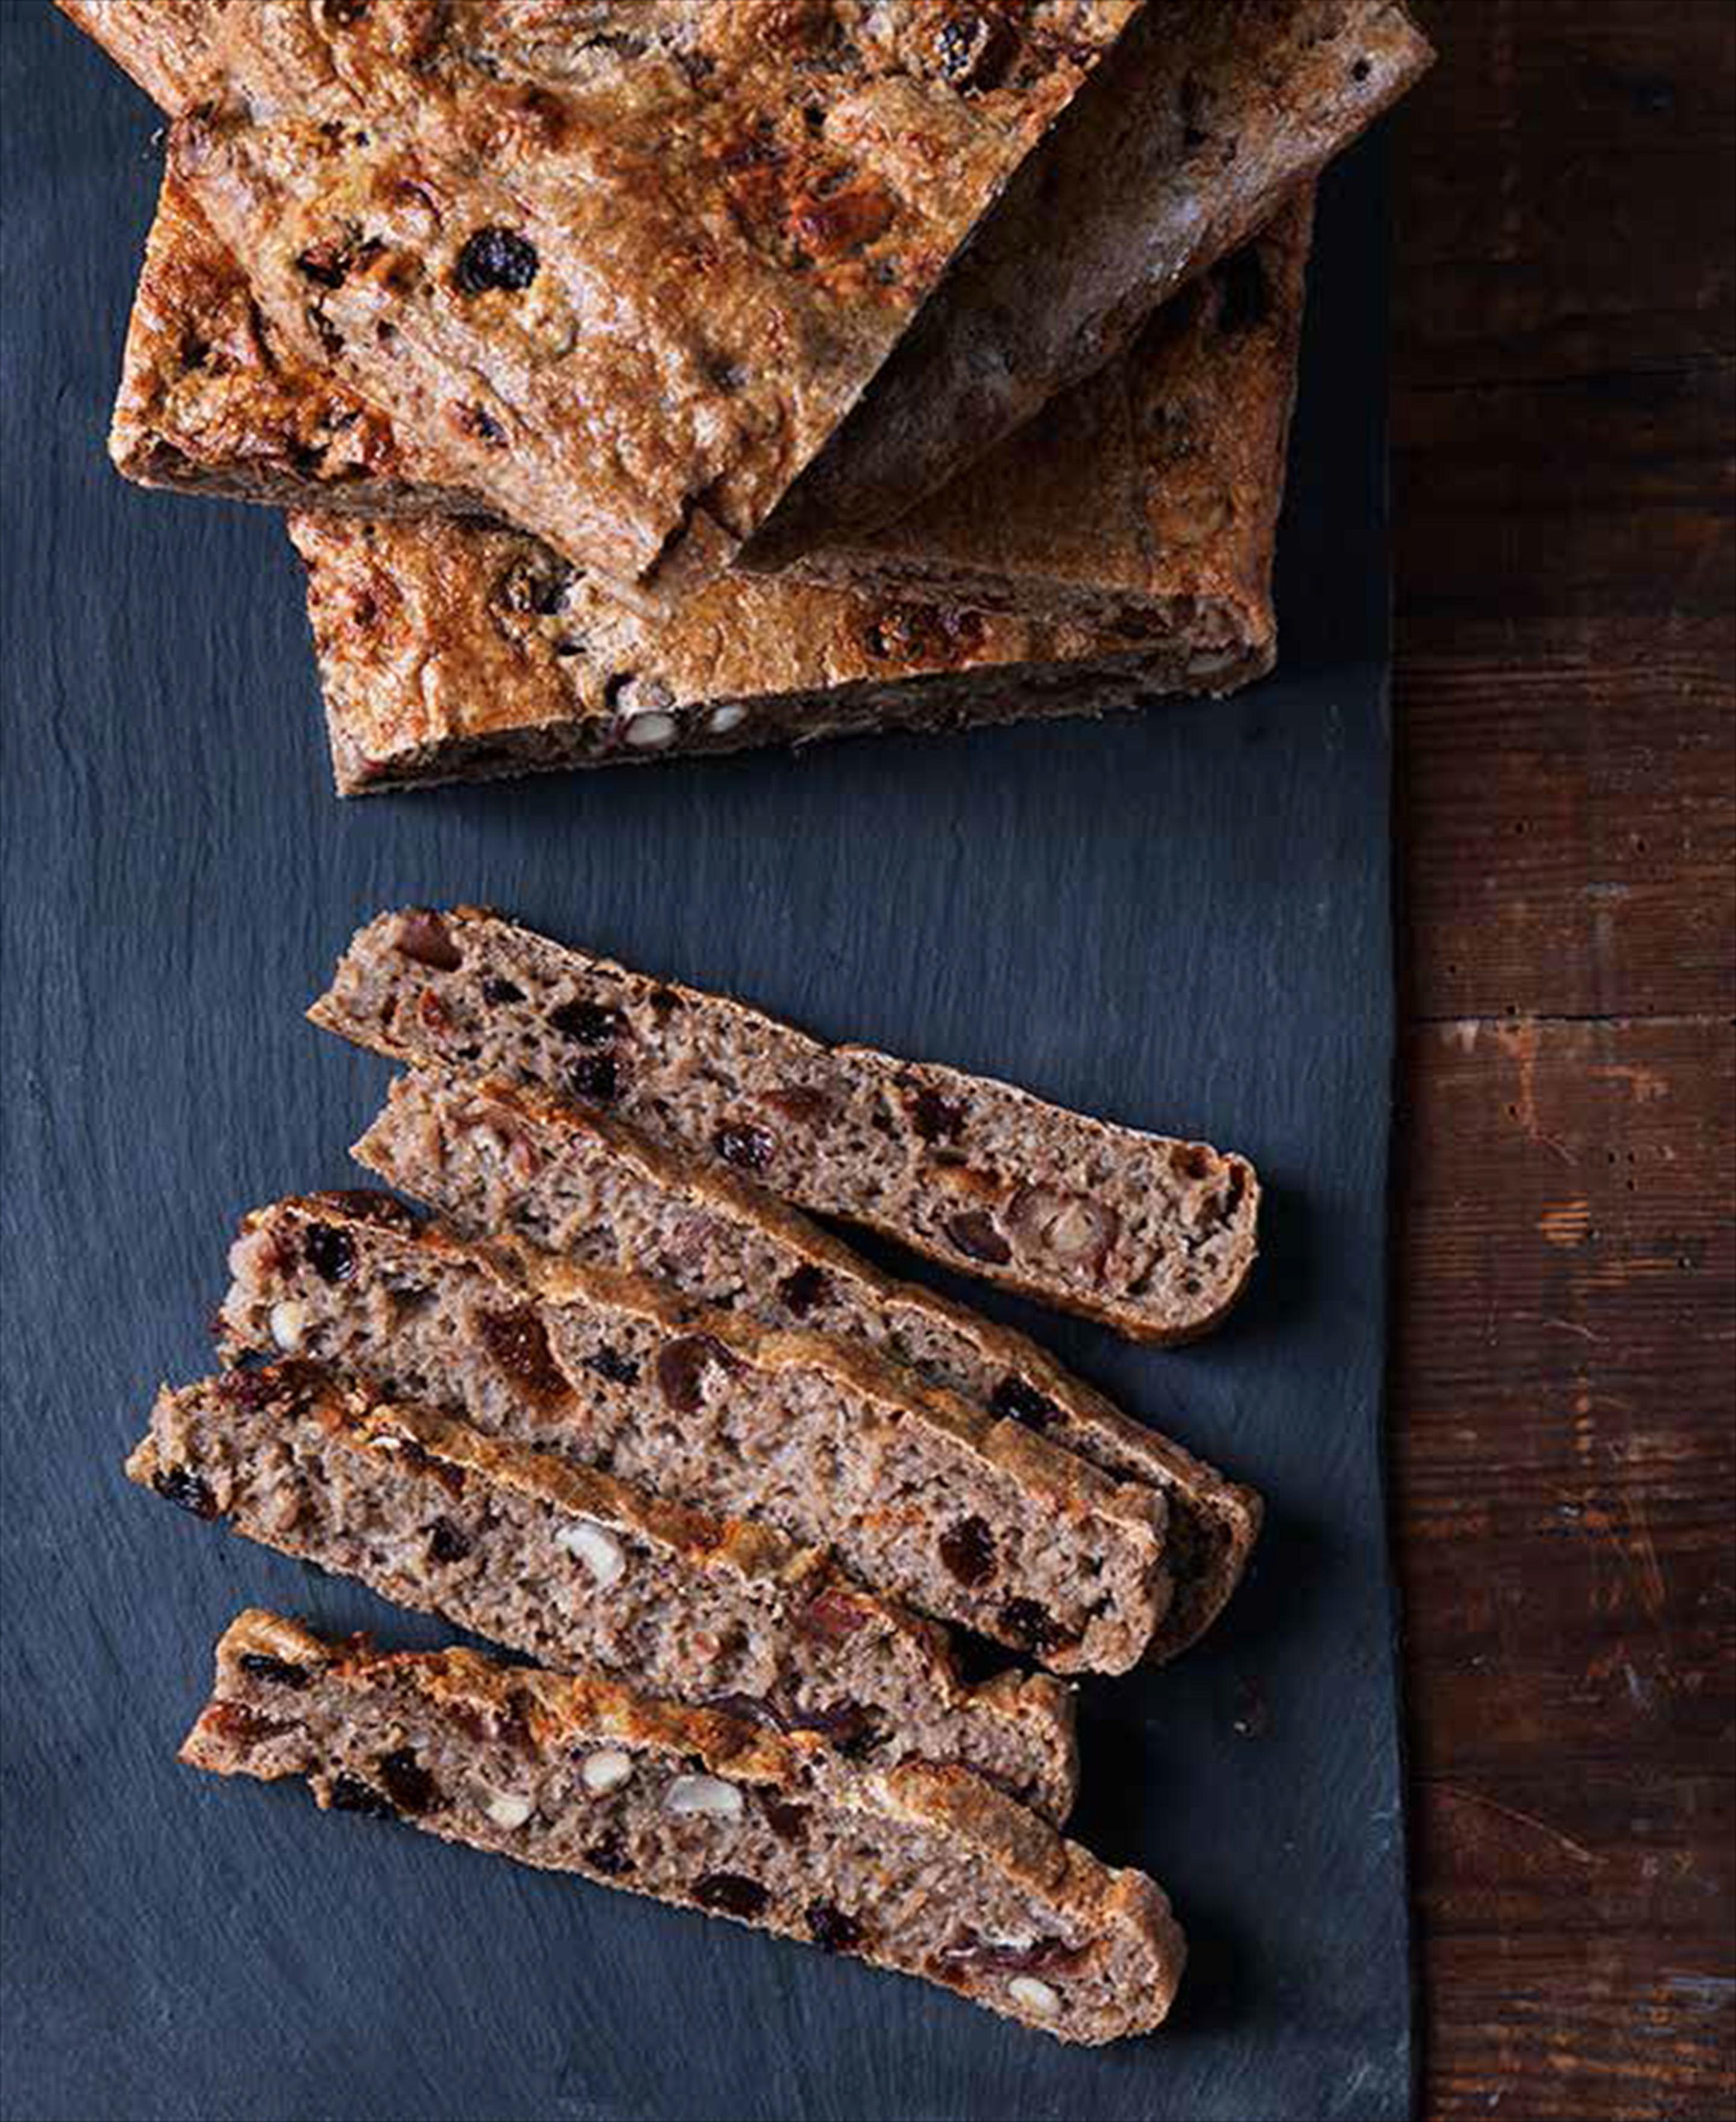 Nordic spelt focaccia with fruit and nuts